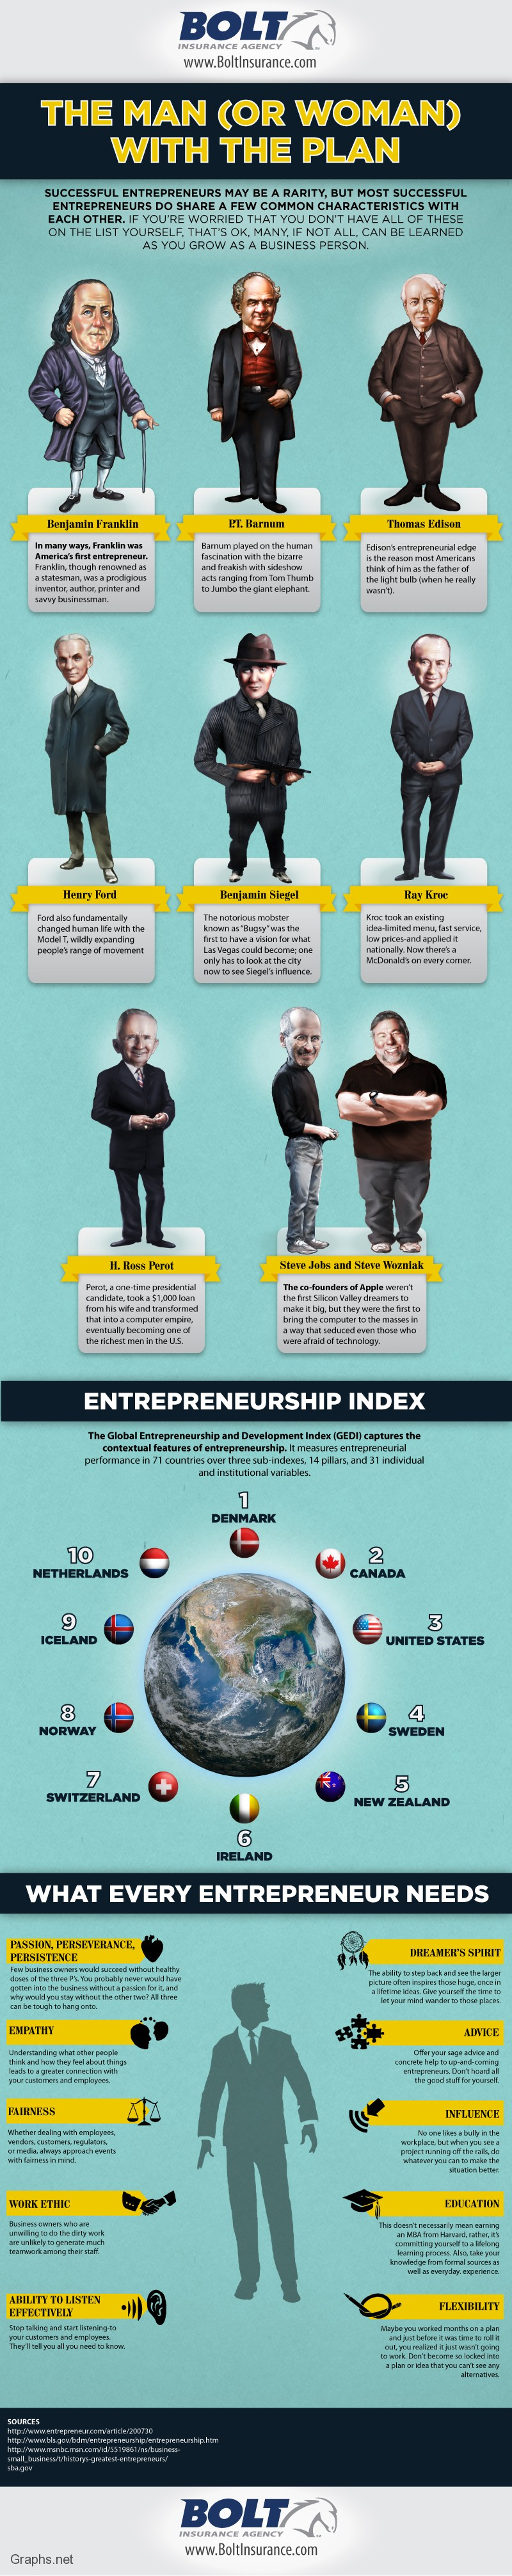 World's Most Successful Entrepreneurs